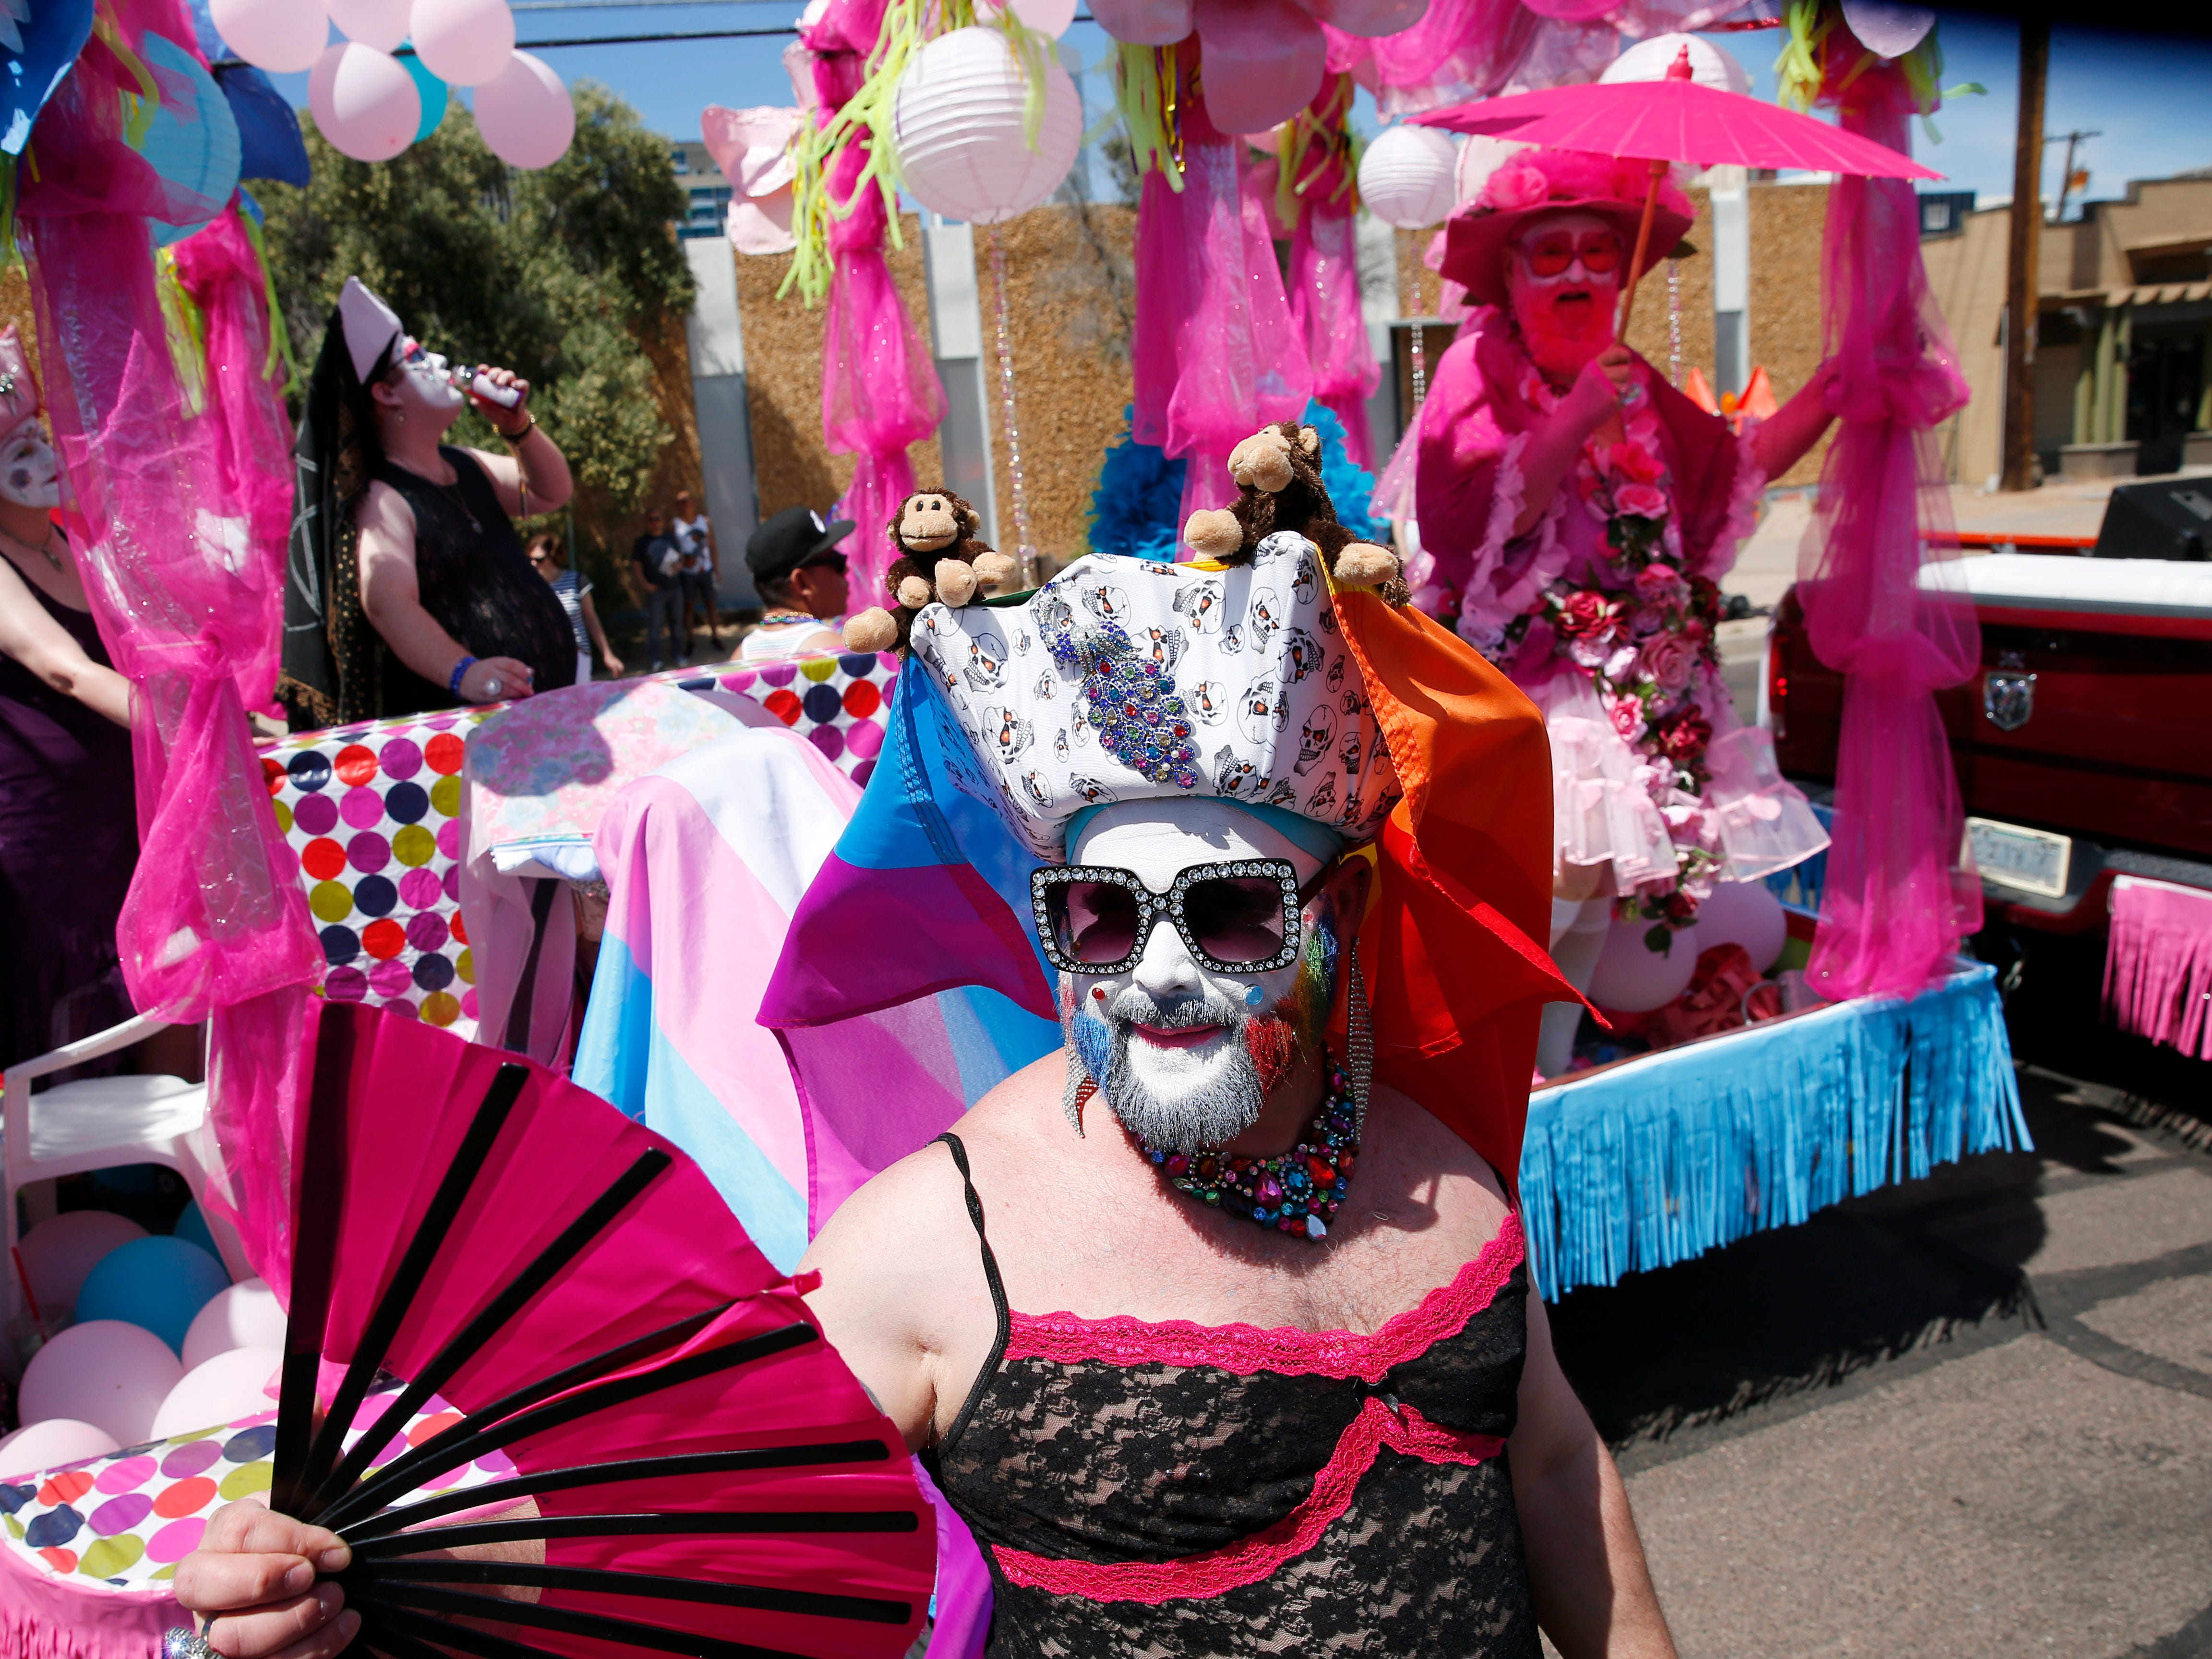 Members of the Grand Canyon Sisters of Perpetual Indulgence march during the Phoenix Pride Parade on April 7, 2019.